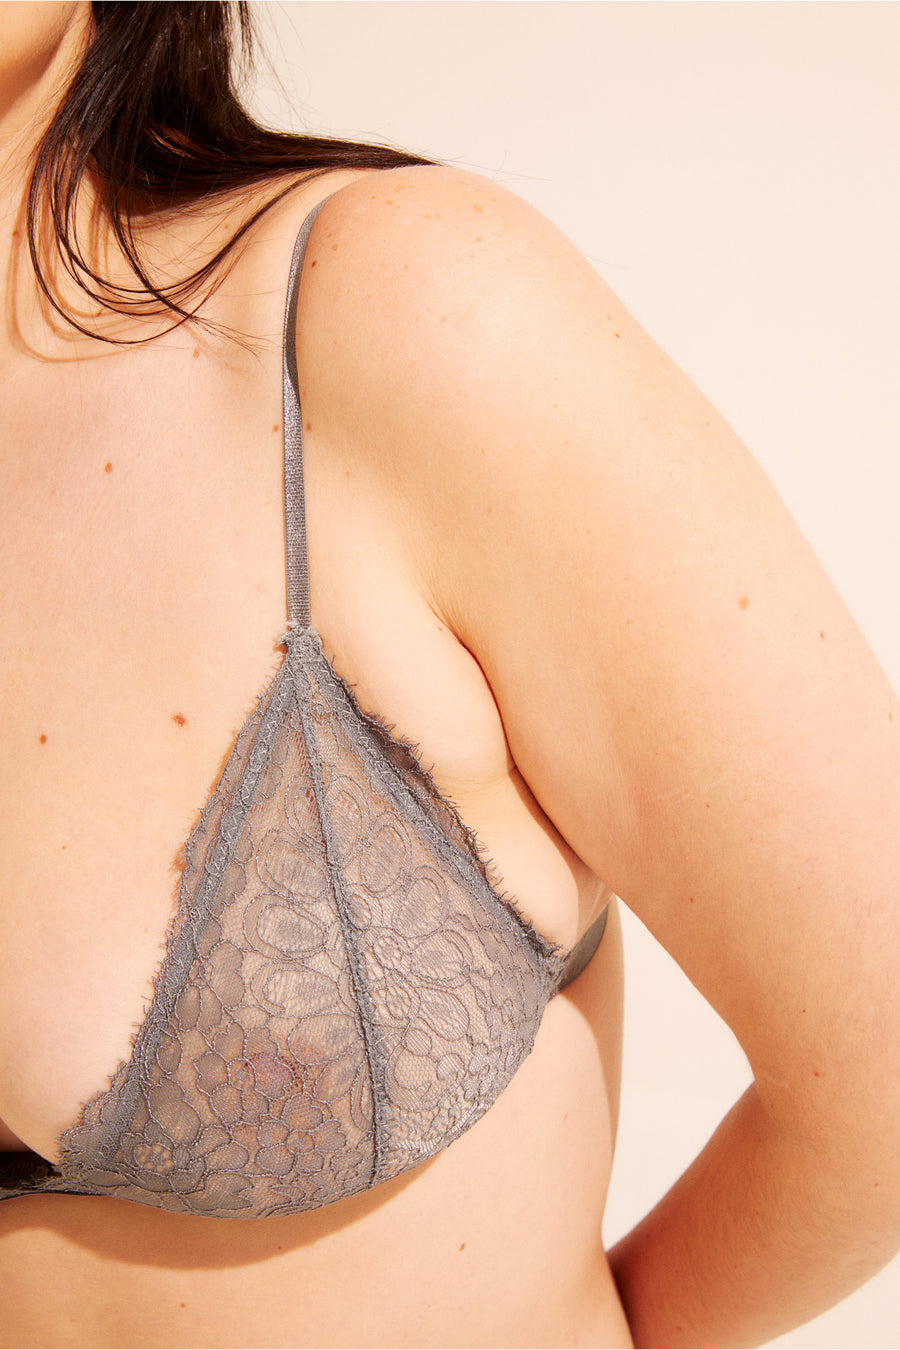 The Crosby Bralette - a triangle lace bra with adjustable straps and a snap closure back. Available in XS - XXL.